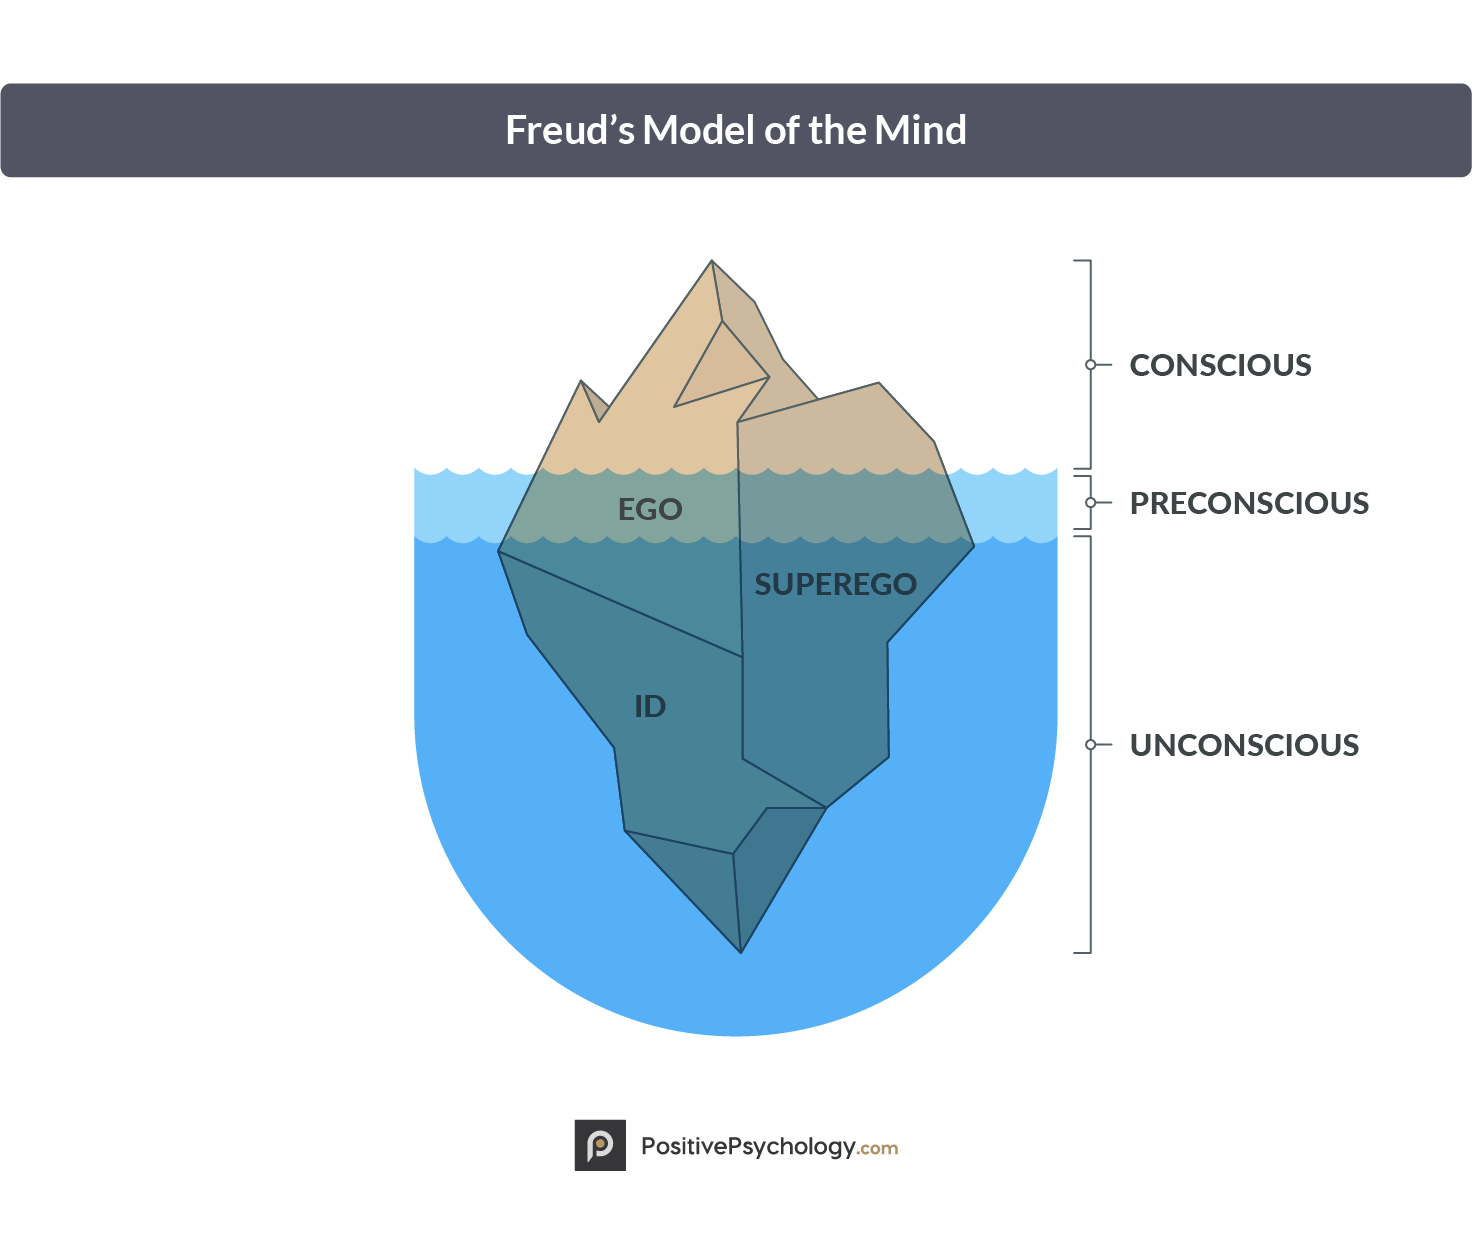 Freud's Model of the Mind